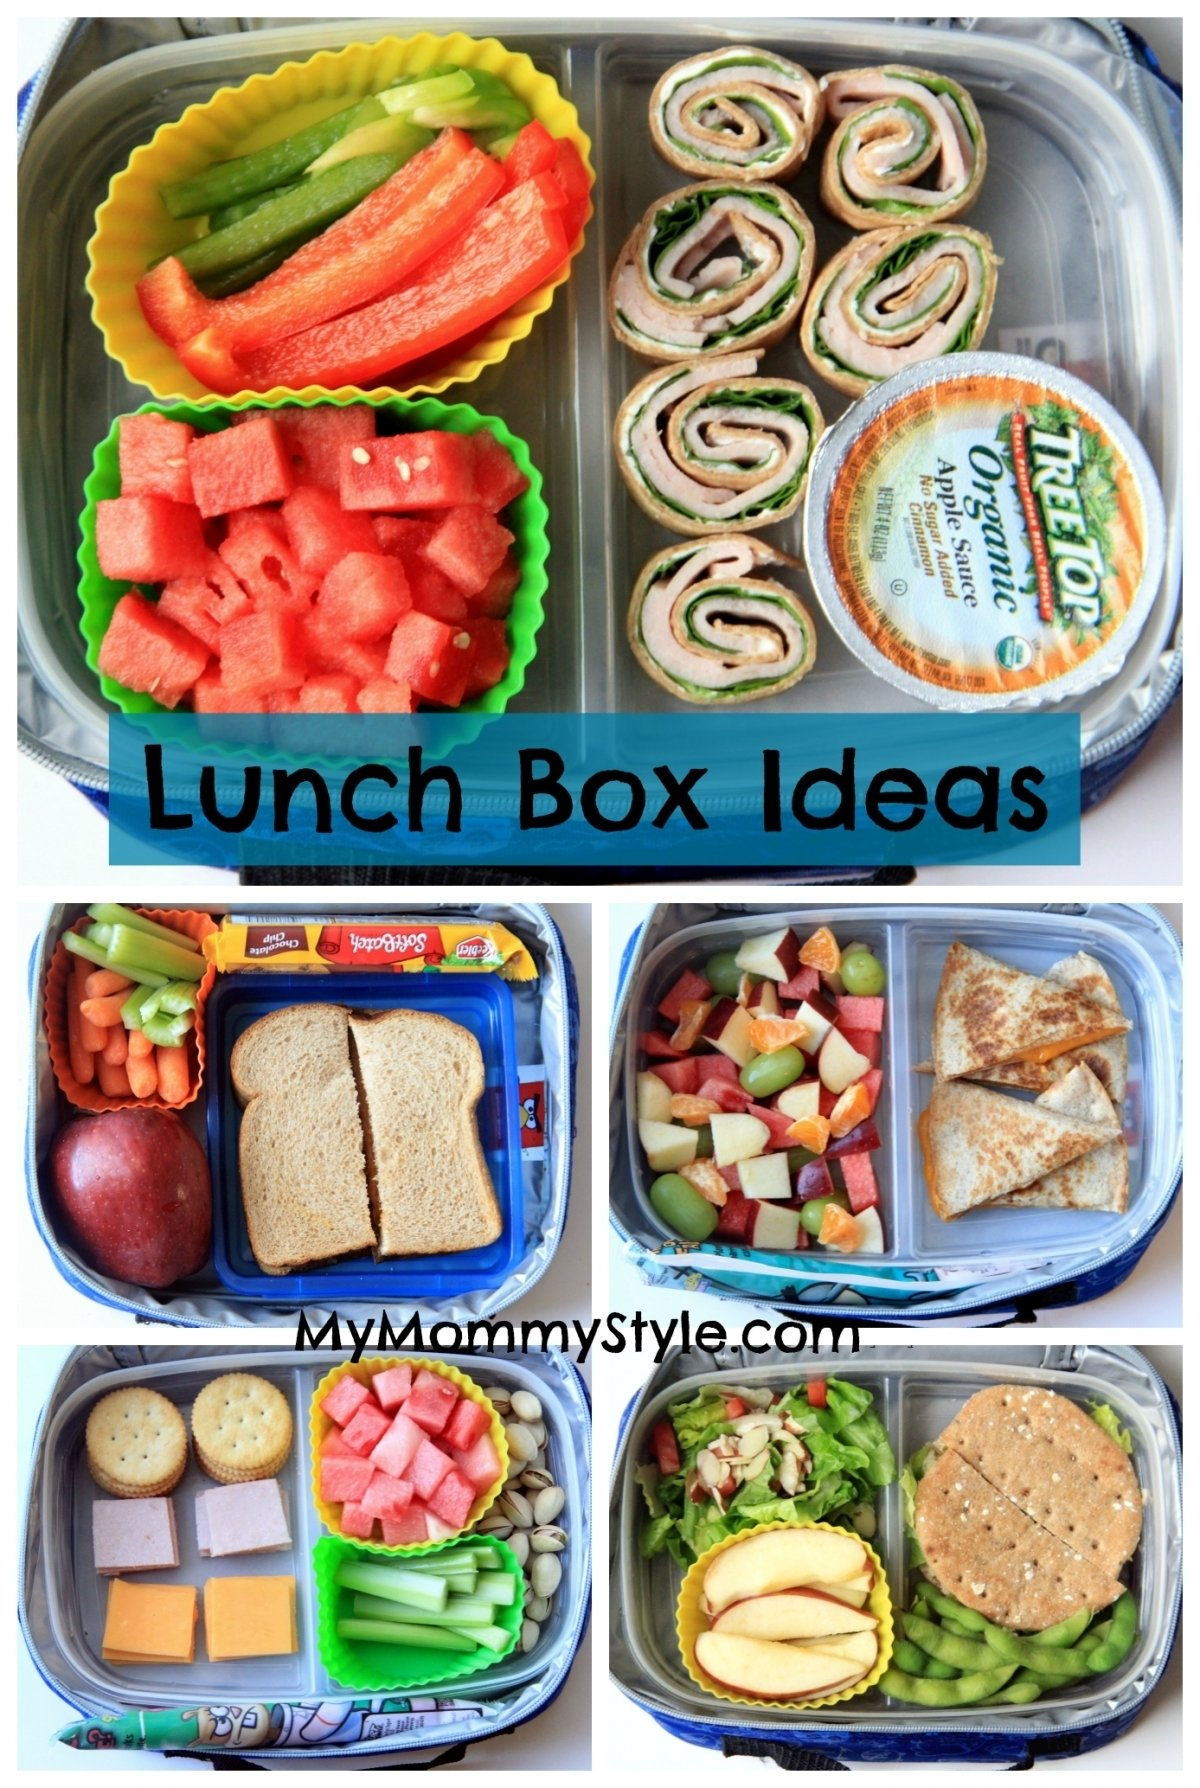 10 Most Popular Healthy Kid Lunch Ideas For School lunch box ideas kid lunches school lunch cold lunch ideas healthy 8